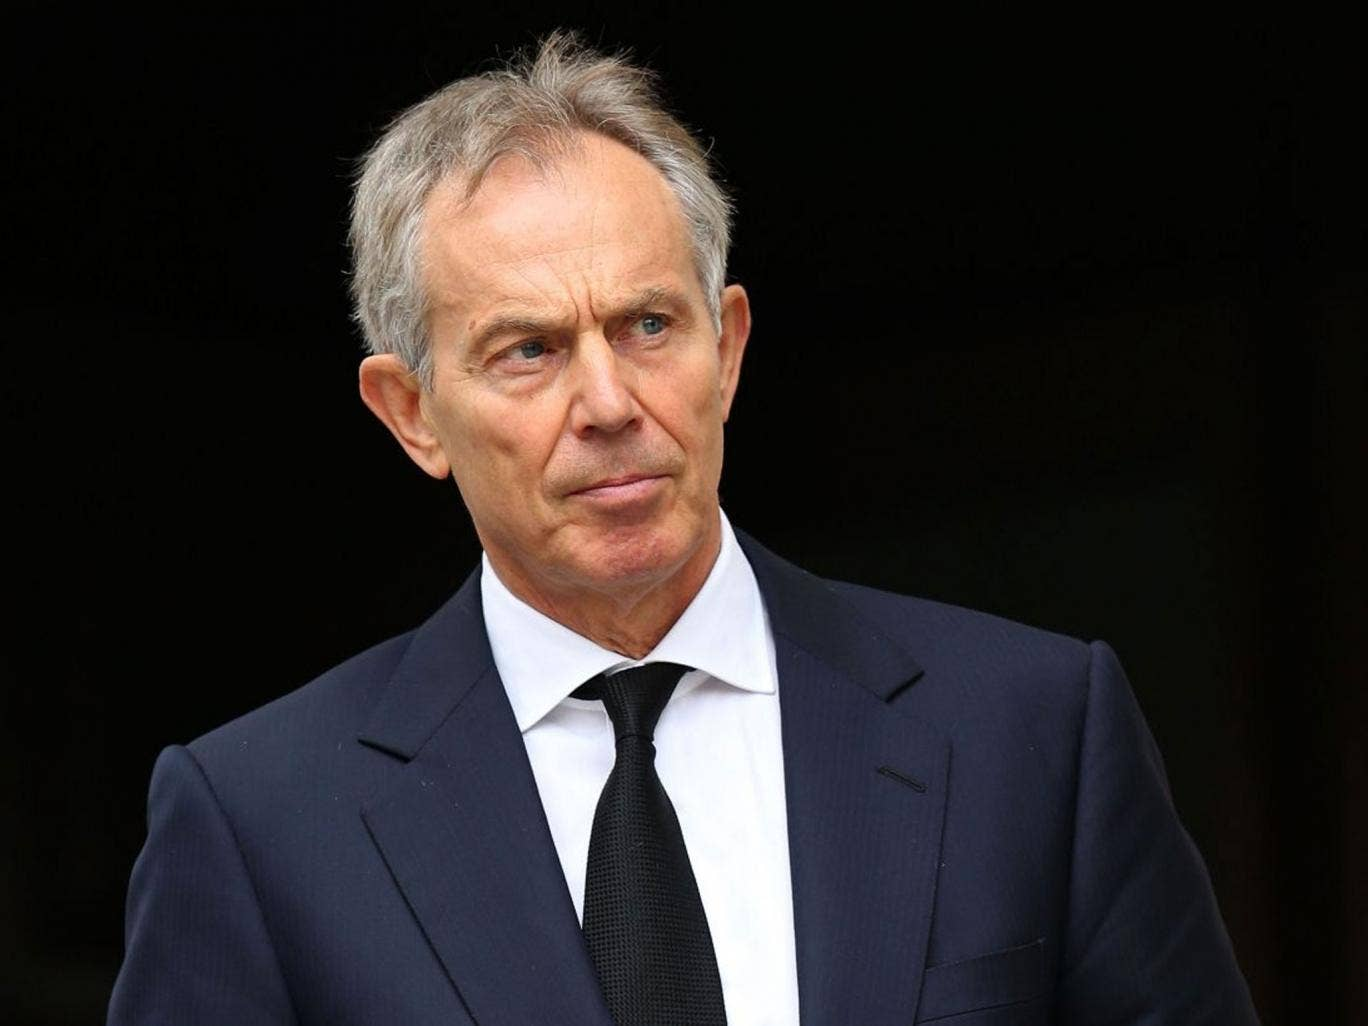 Tony Blair who has insisted he is not the reason for the delay in the publication of the Chilcot Inquiry, saying he has as much interest in knowing the findings as anyone else.